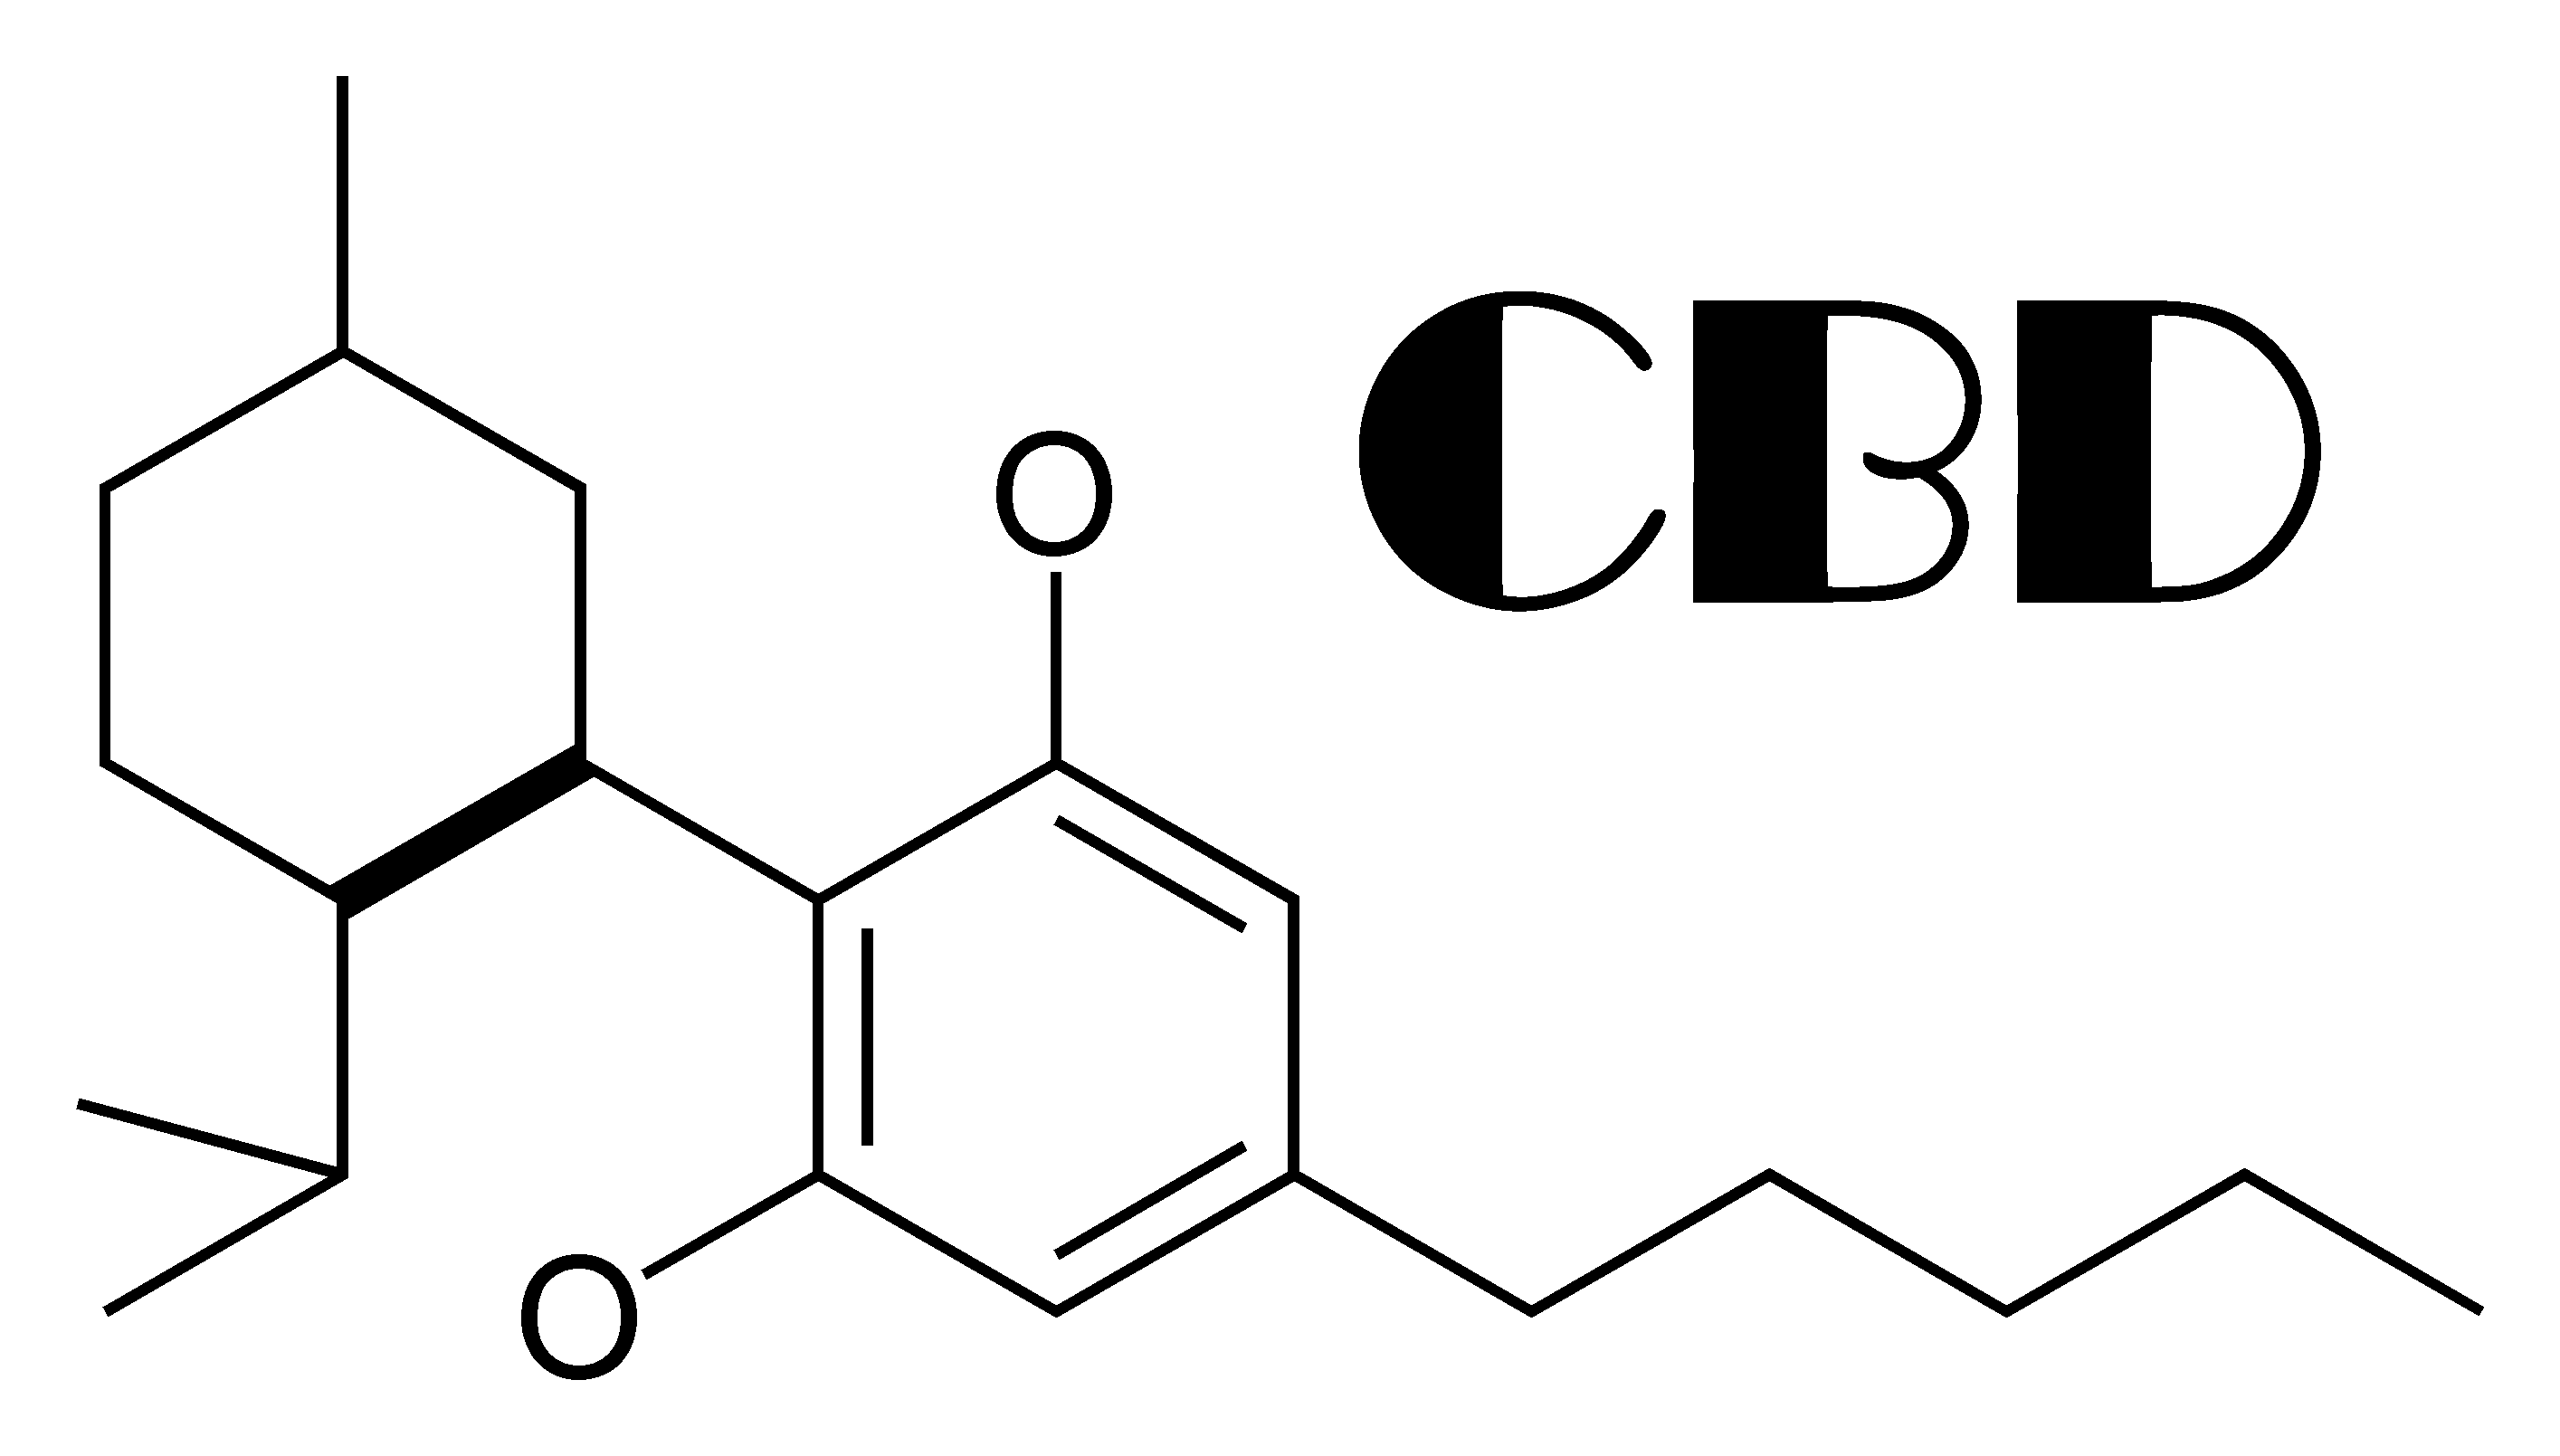 CBD-type_cyclization_of_cannabinoids1